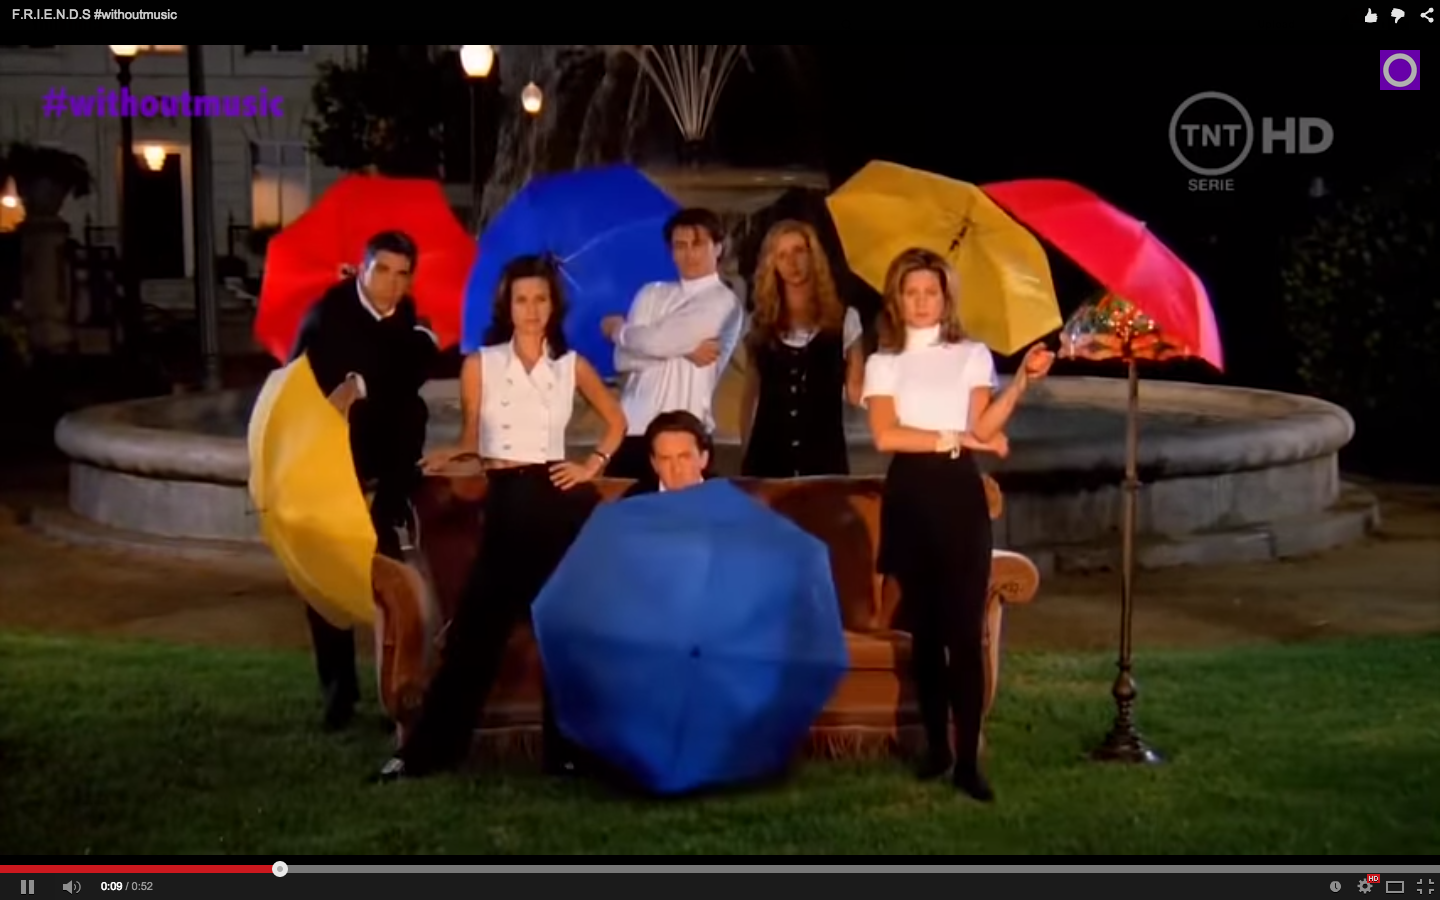 The Quot Friends Quot Opening Credits Without Music Are Really Weird